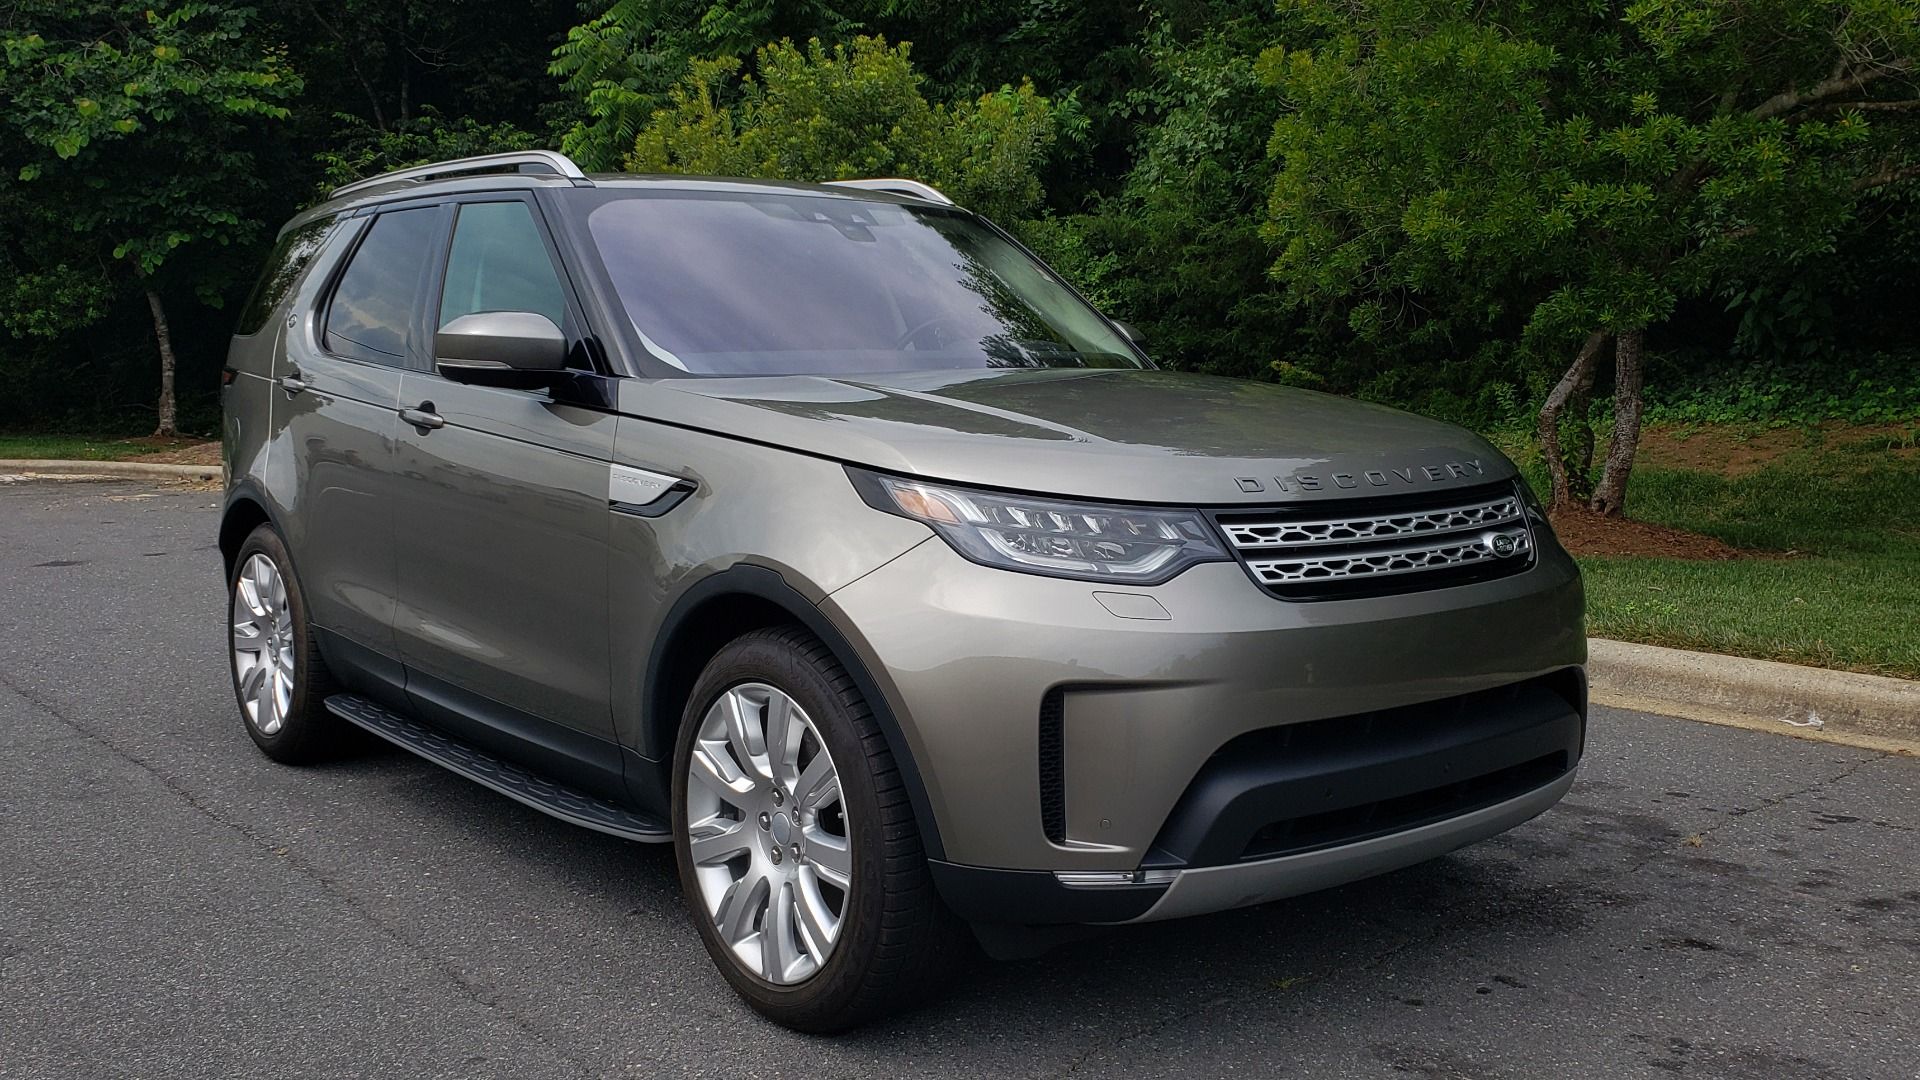 Used 2018 Land Rover DISCOVERY HSE / NAV / DRV PKG / VISION / CLIMATE / CAPABILITY / 3-ROW for sale Sold at Formula Imports in Charlotte NC 28227 4